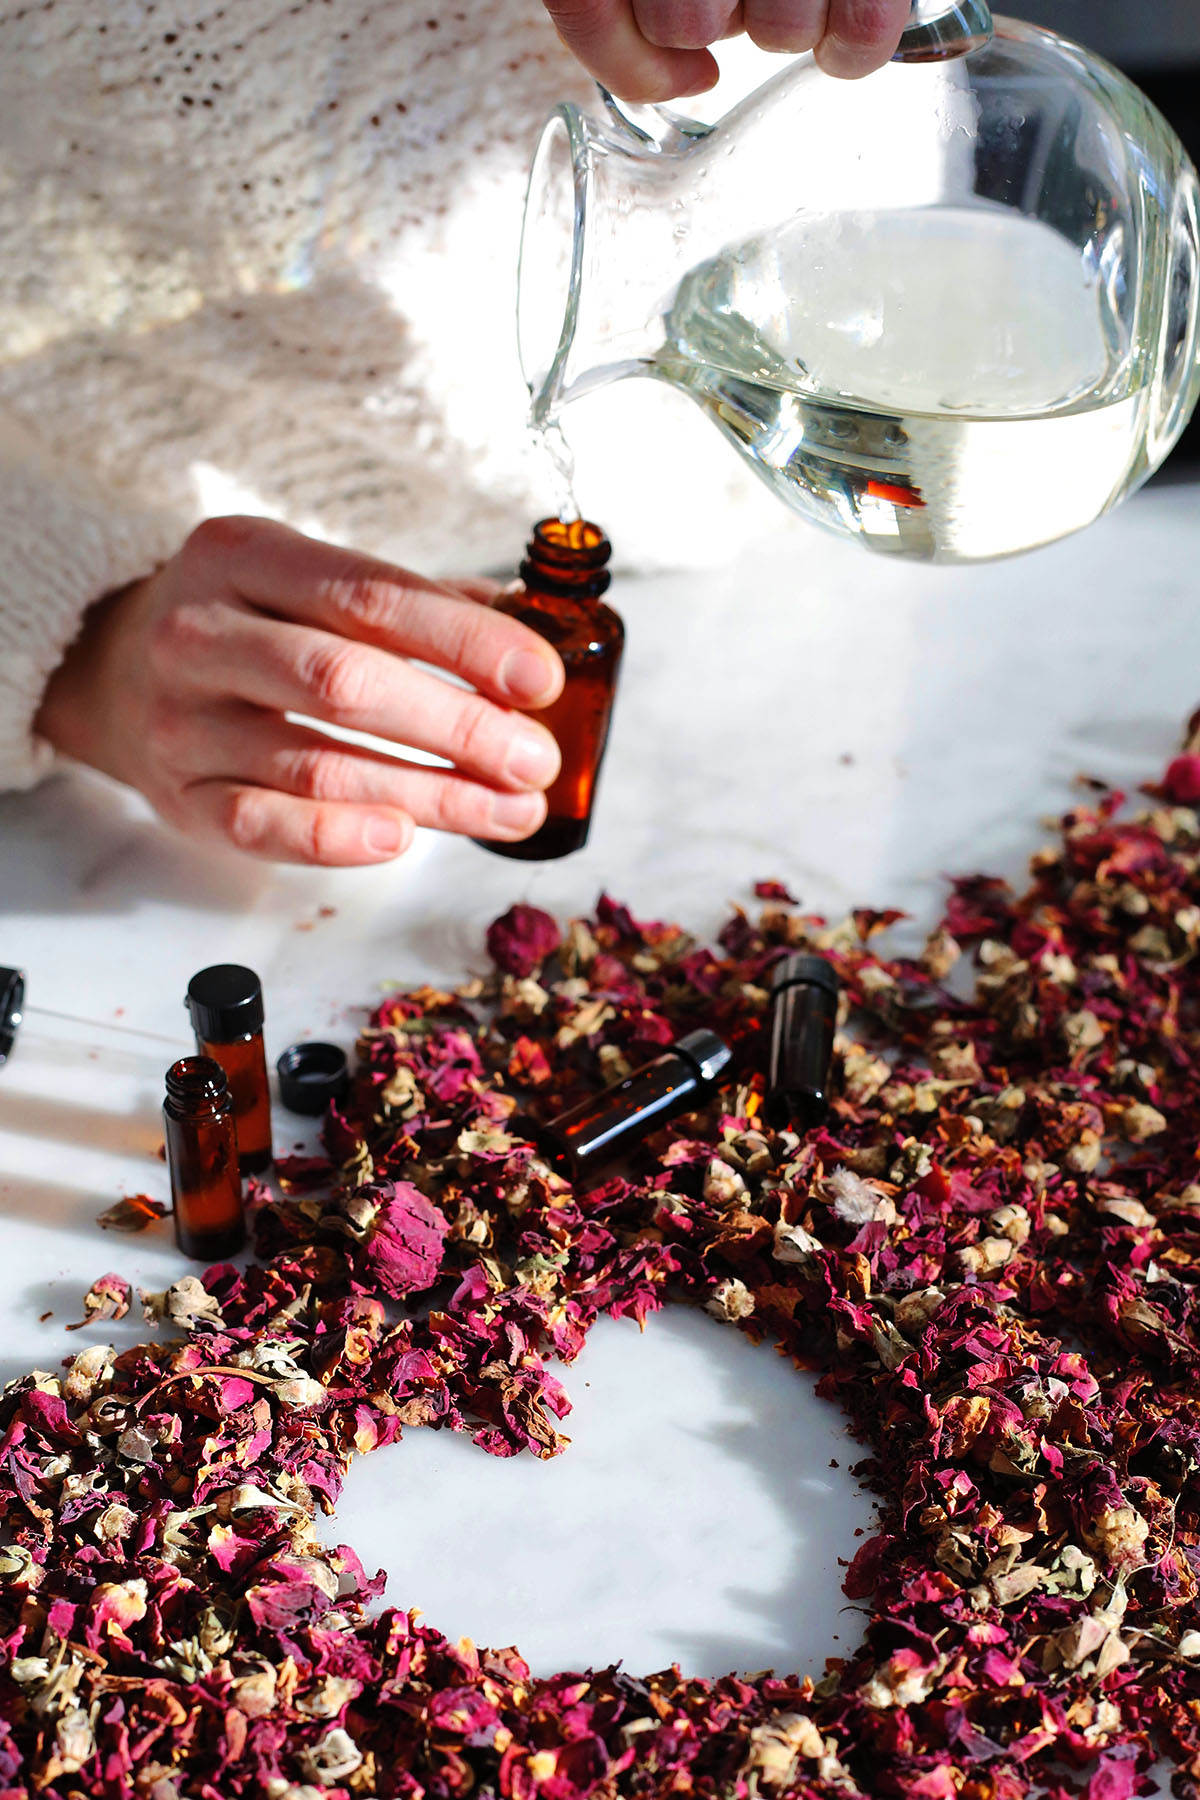 26 Handmade Valentine's Day Ideas: Gifts, Recipes, and DIYs to Show Your Love | Herbal Academy | We have pulled together 26 handmade Valentine's Day ideas that will help you find the perfect floral gift as well as unique herbal-inspired ways to celebrate this day of love!